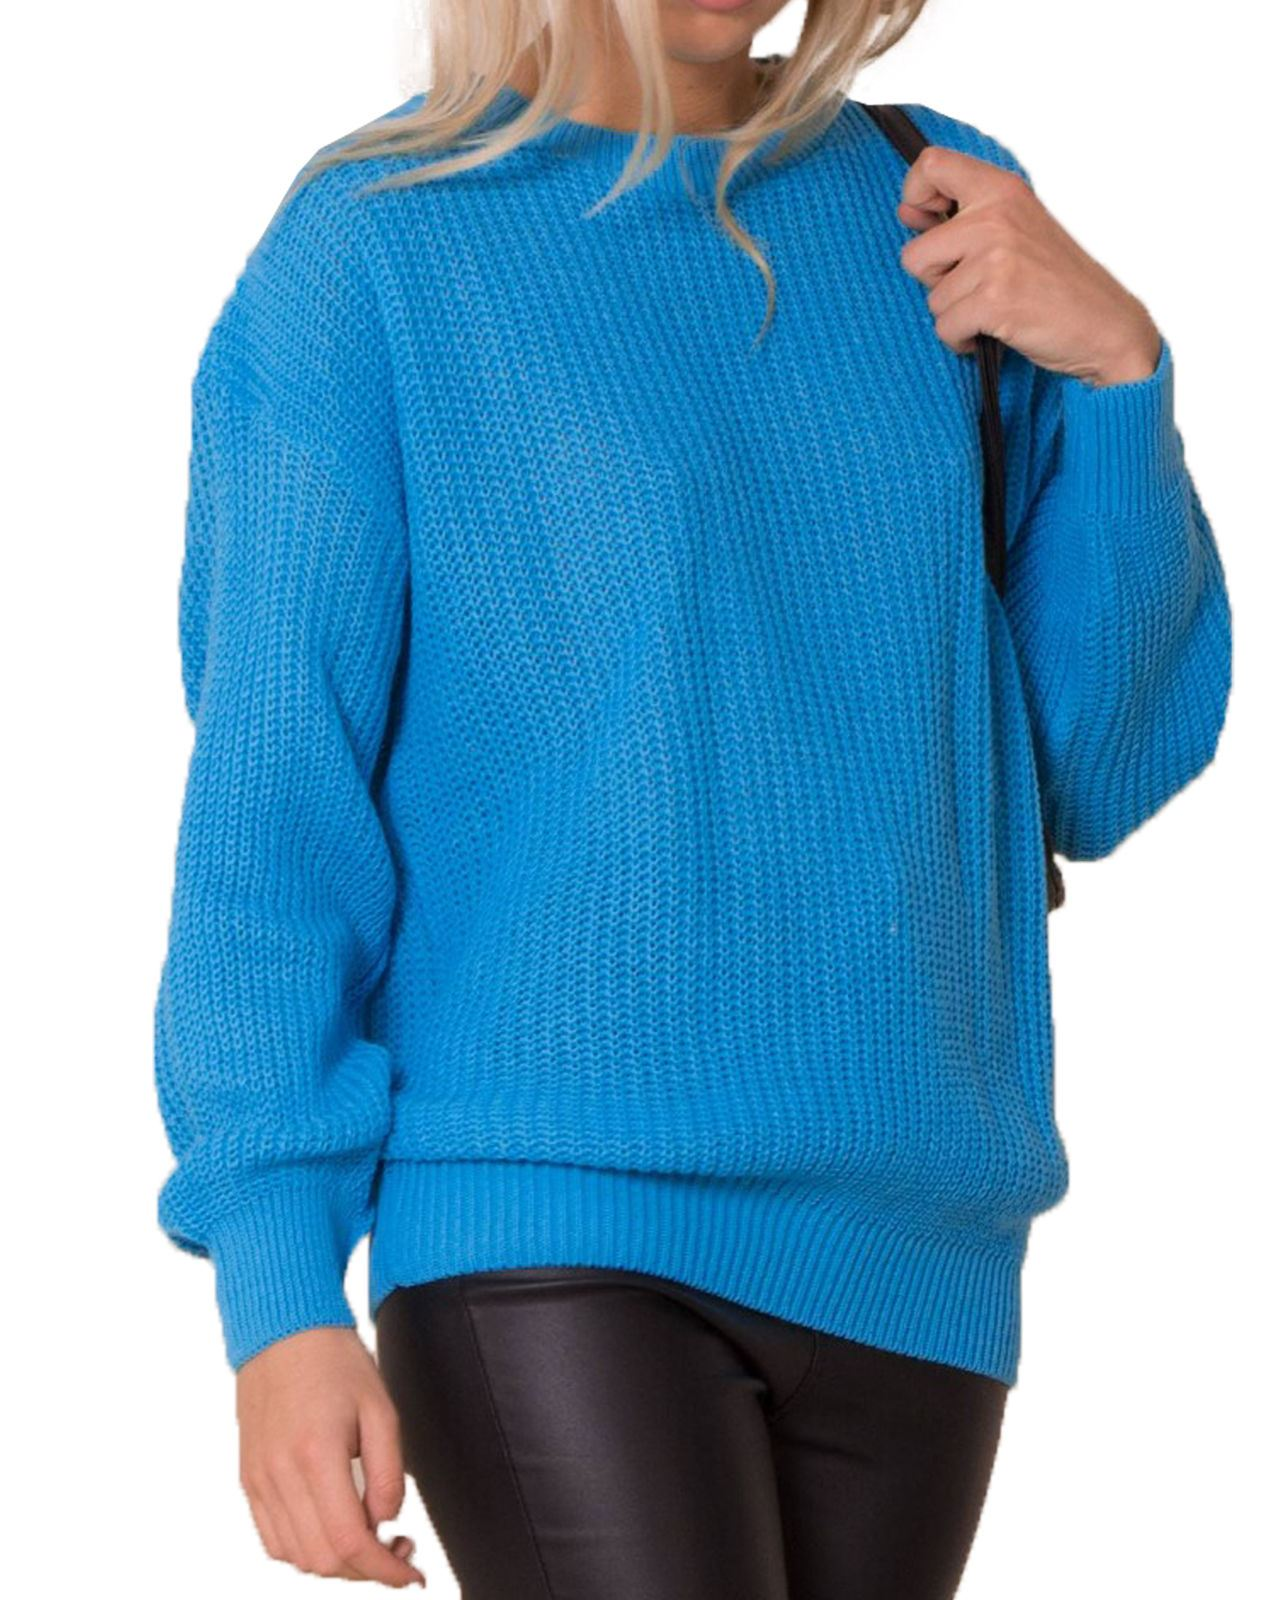 Online Shop for long baggy jumpers Promotion on Aliexpress Find the best deals hot long baggy jumpers. Top brands like AisiyiFushi for your selection at Aliexpress.